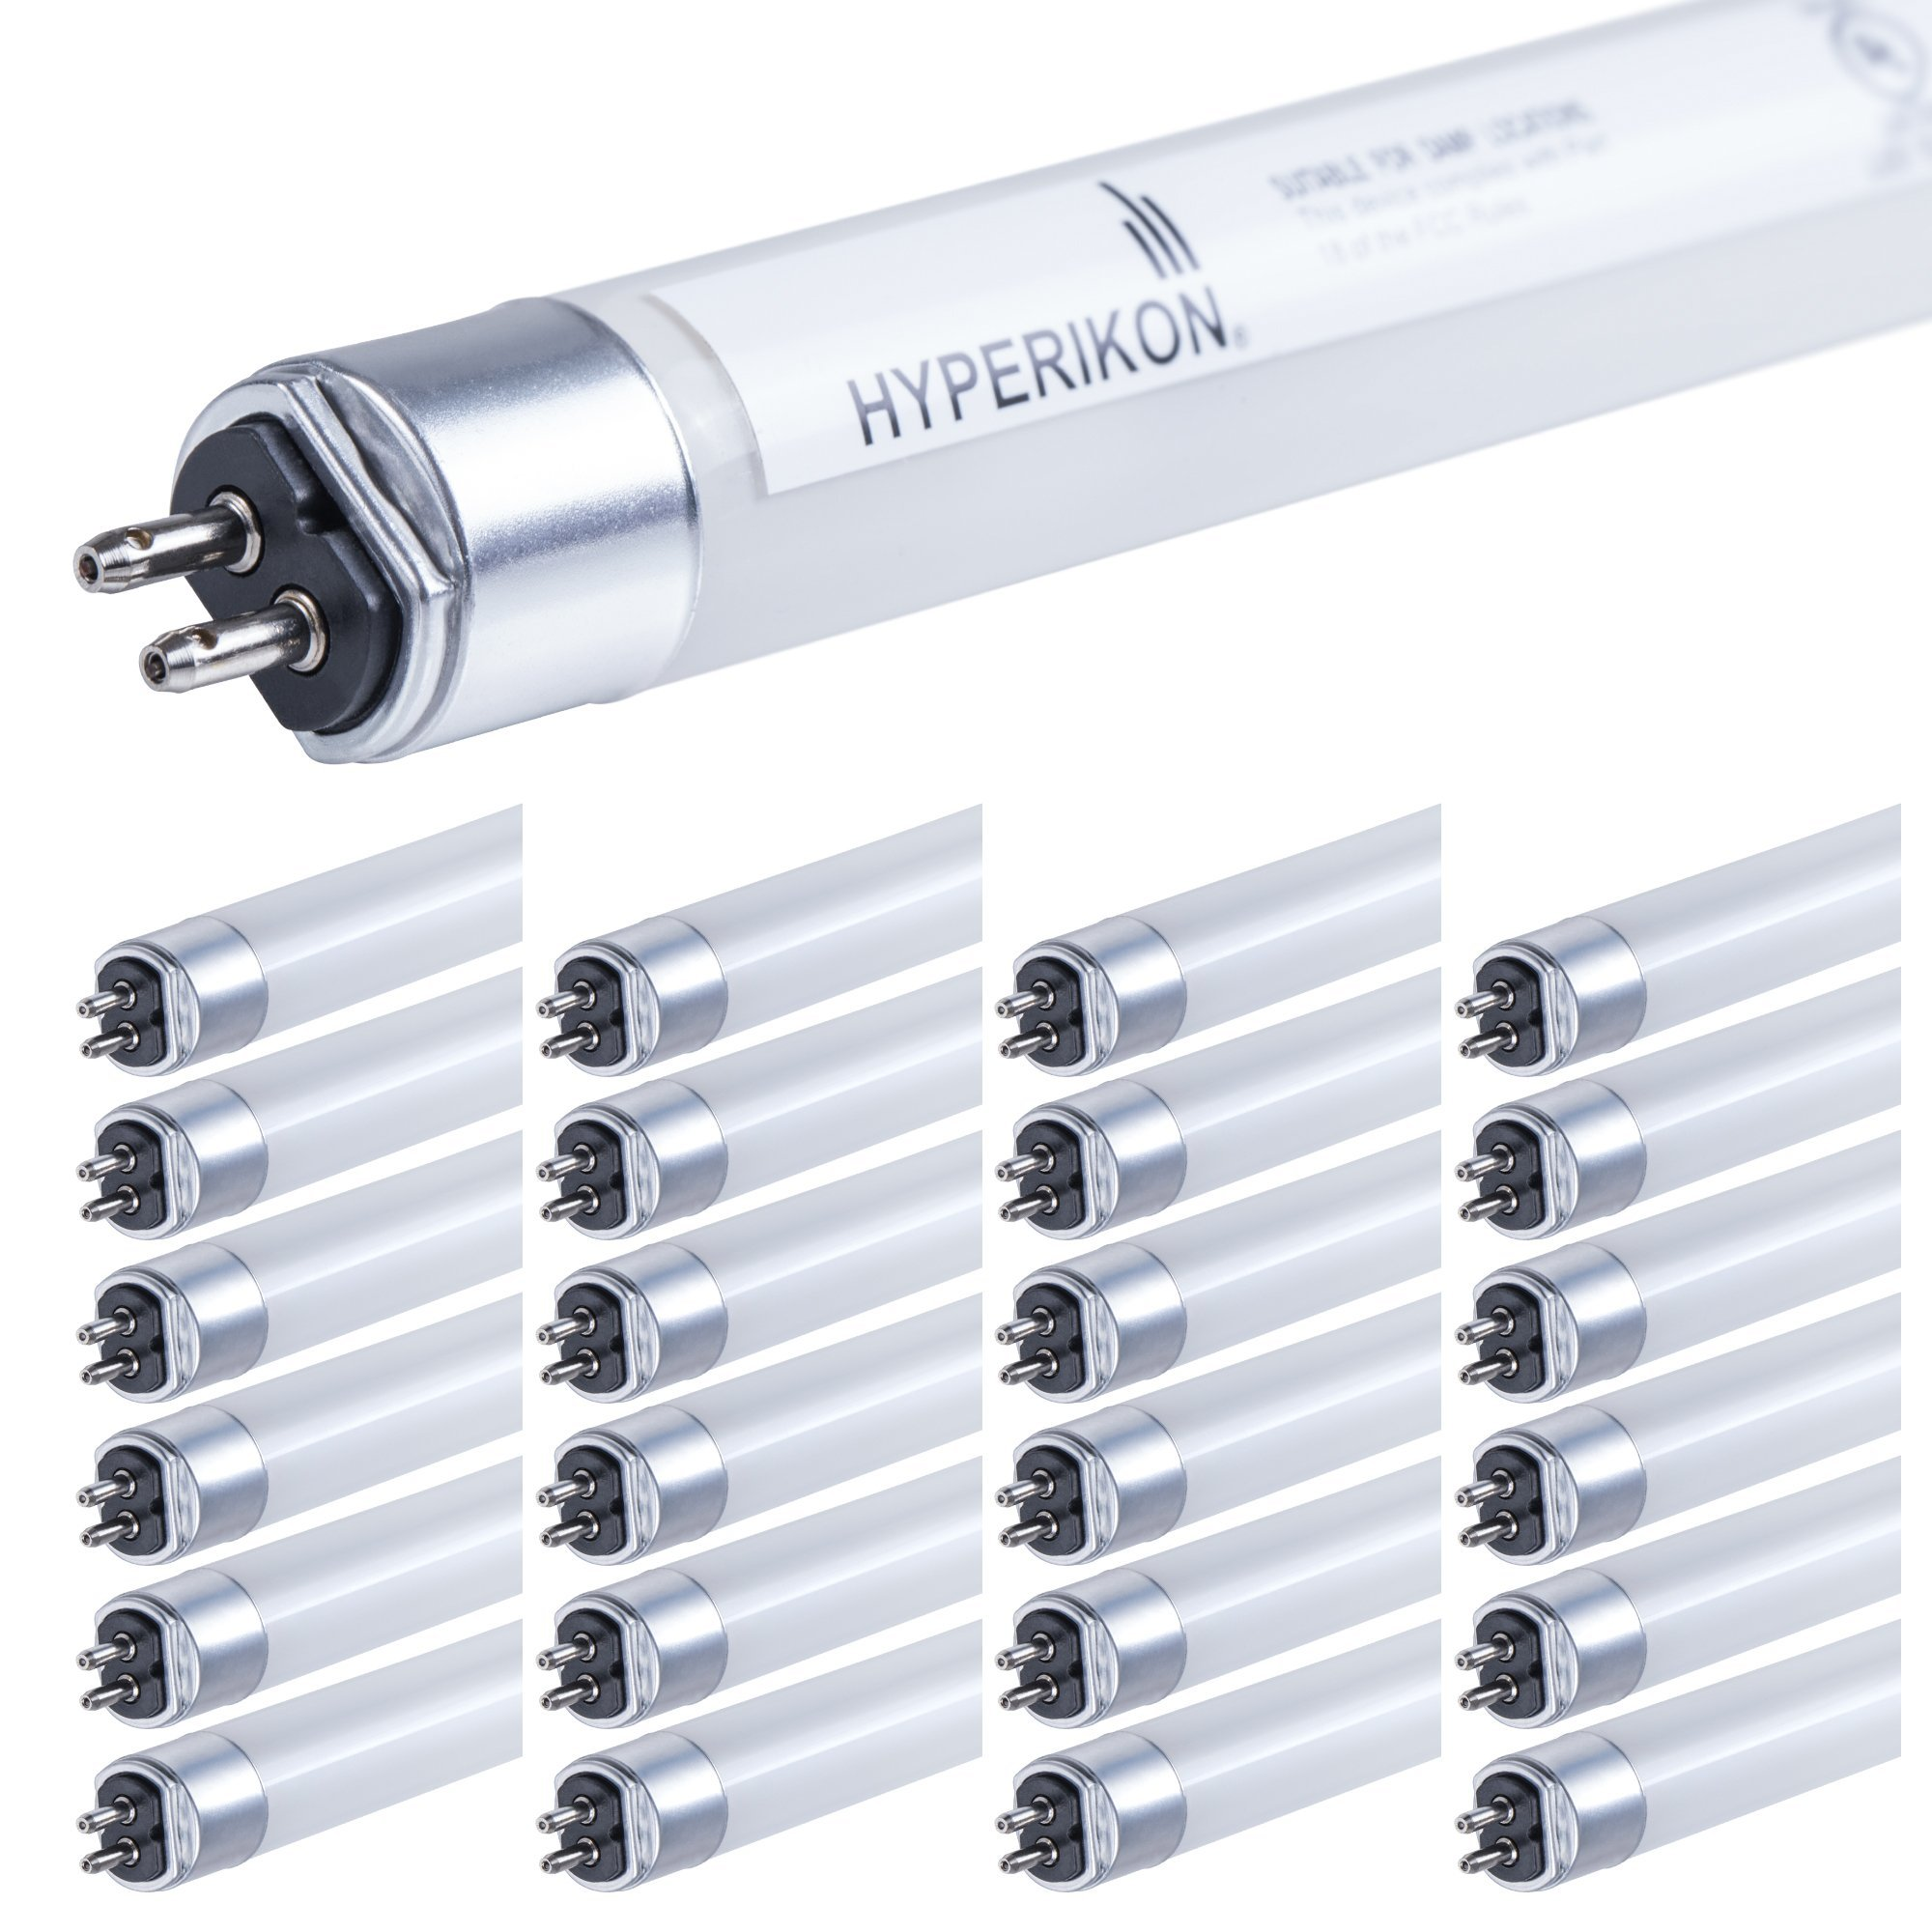 Hyperikon T5 LED Light Tube, 3.75FT, Dual-End Powered, Ballast Compatible, 25W (55W equivalent), 3500 Lumens, G5 Base, 5000K, Frosted, CRI84+, 185°, Shatterproof, Commercial, DLC & UL (Pack of 25)